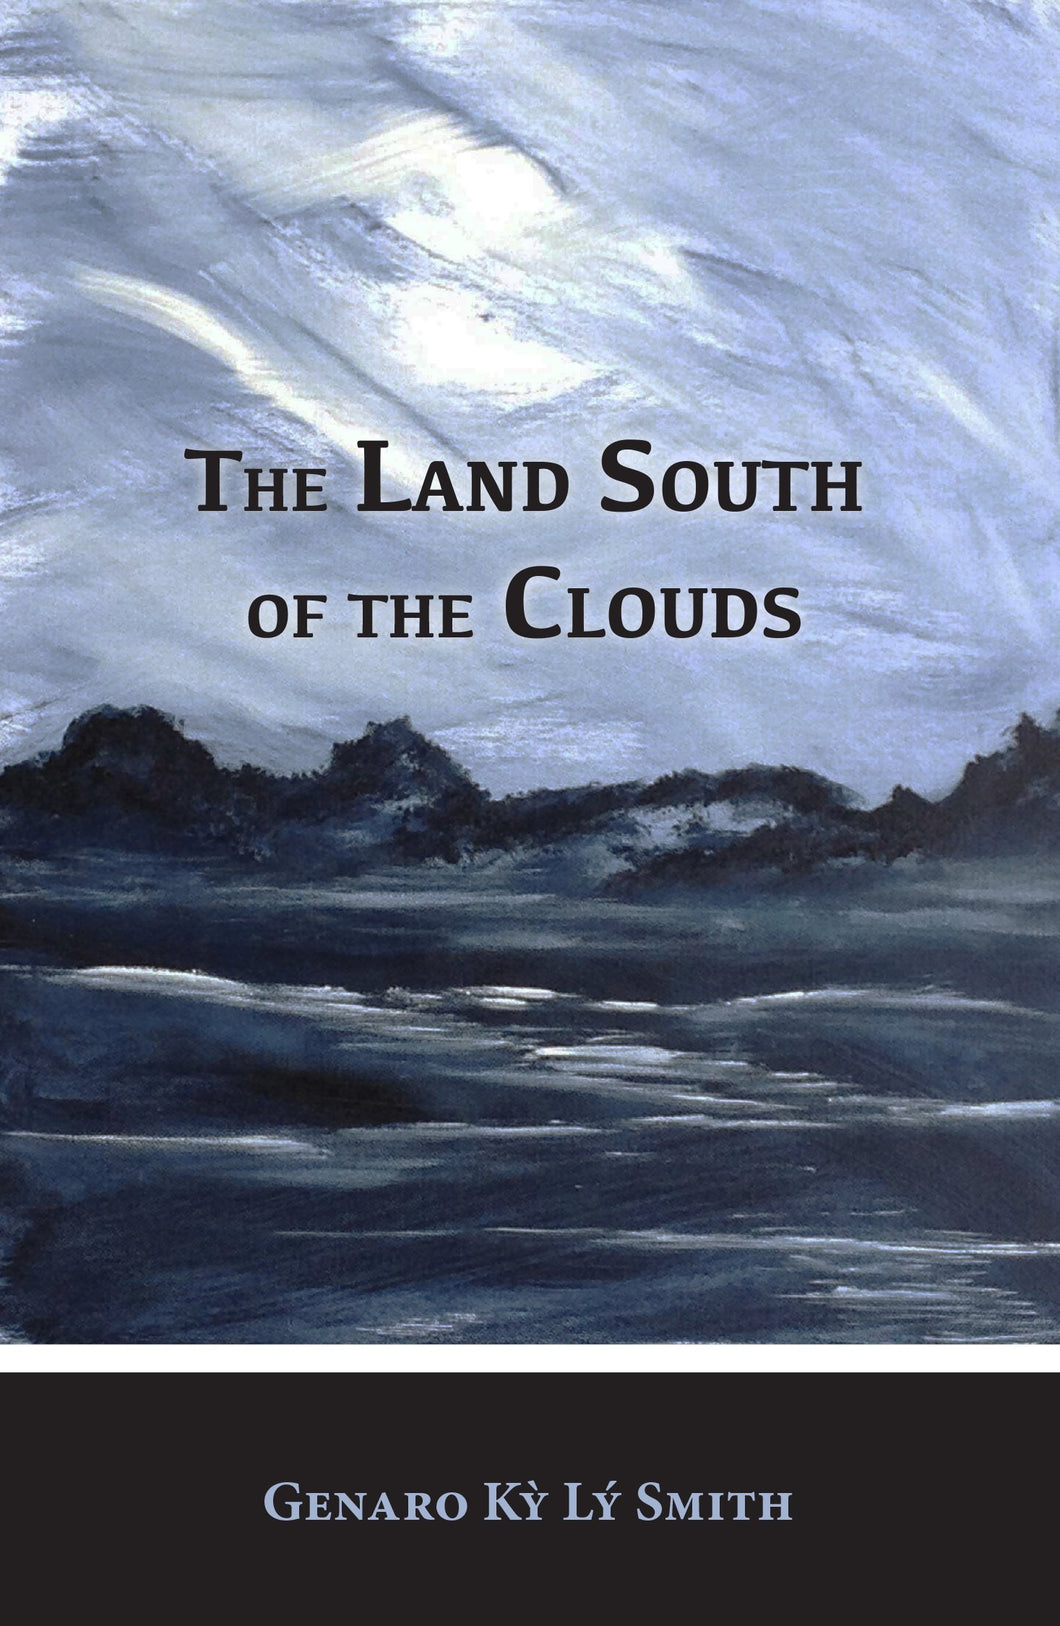 The Land South of the Clouds by Genaro Ky Ly Smith